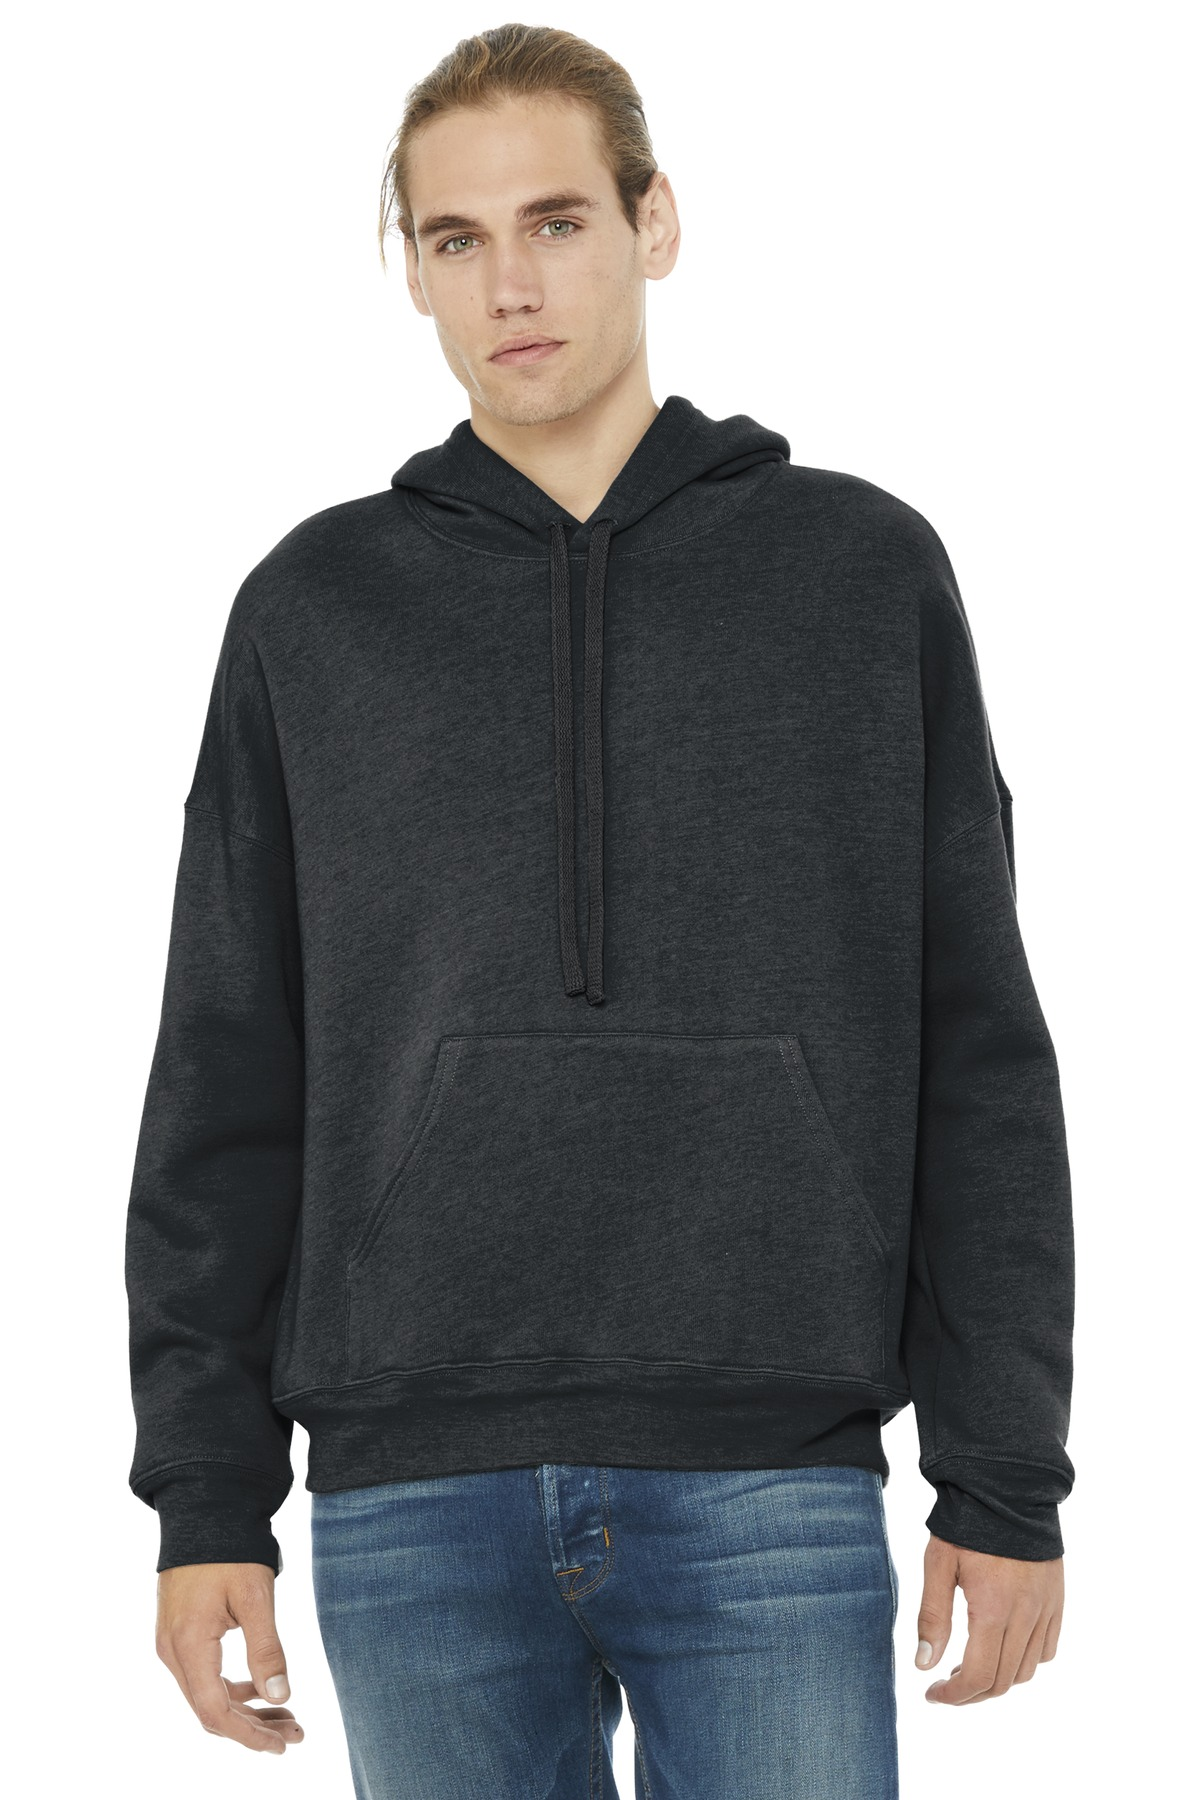 BELLA+CANVAS  ®  Unisex Sponge Fleece Pullover DTM Hoodie. BC3729 - Dark Grey Heather